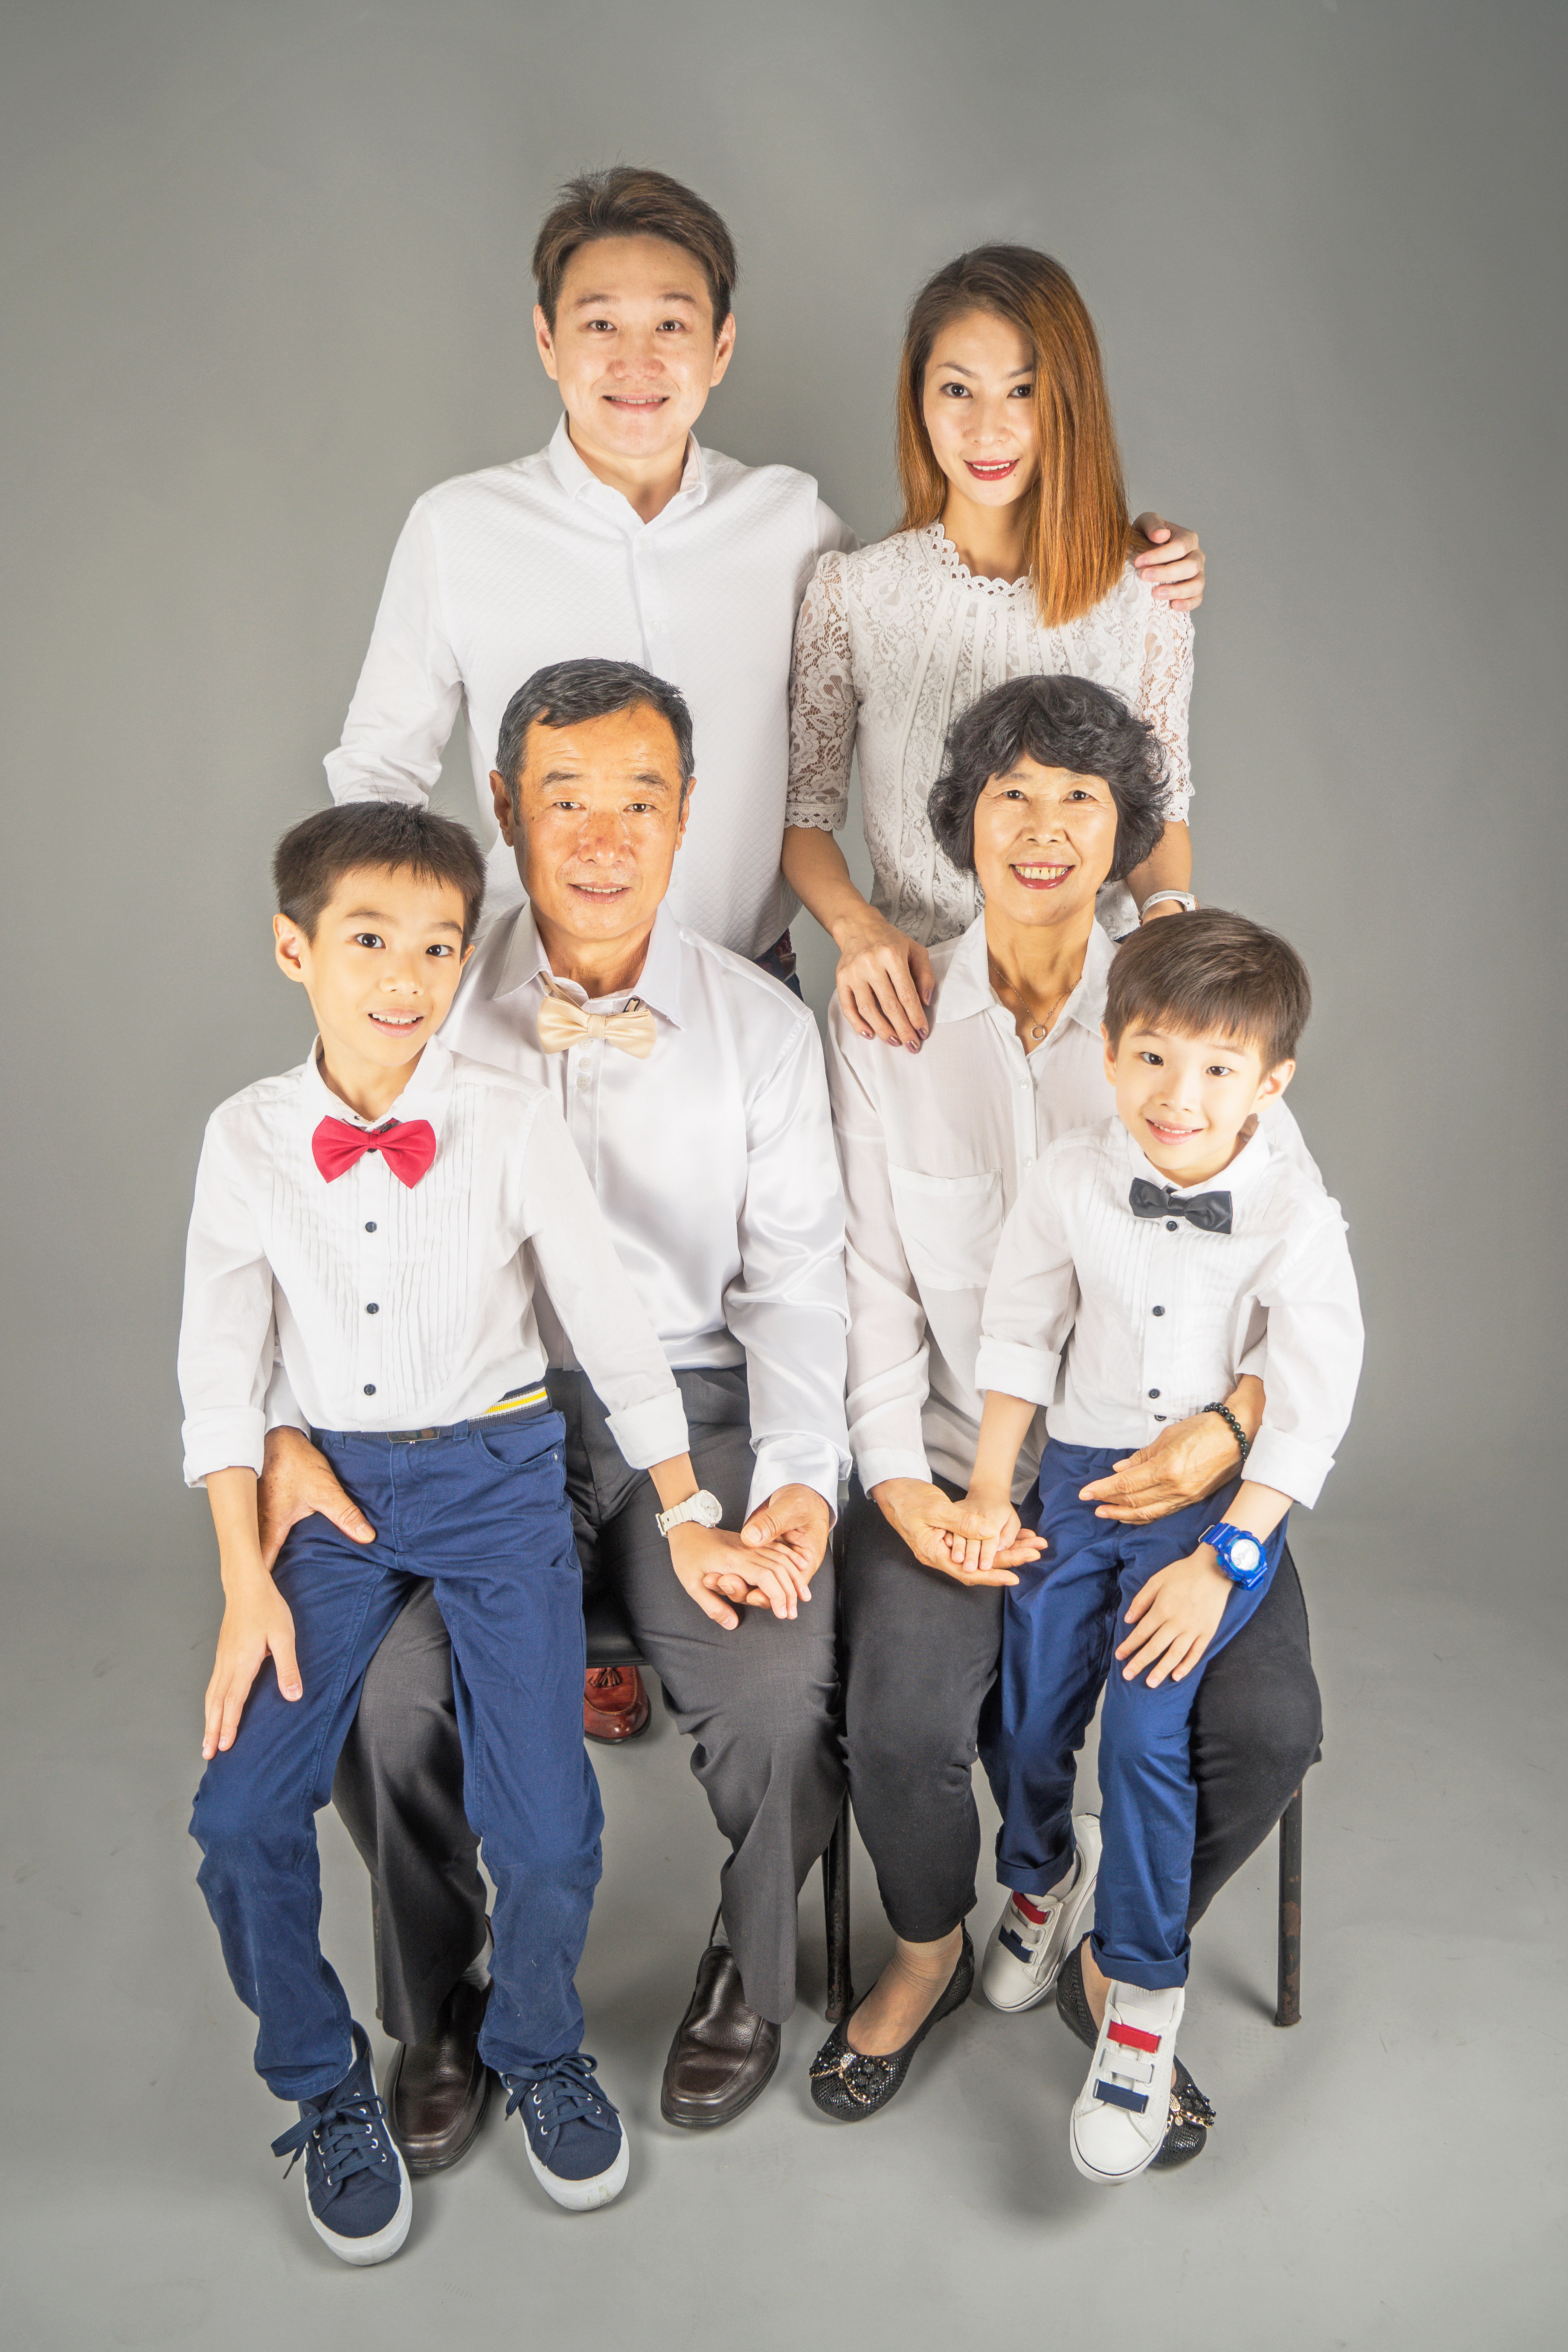 Louie and Family Photoshoot (1)h